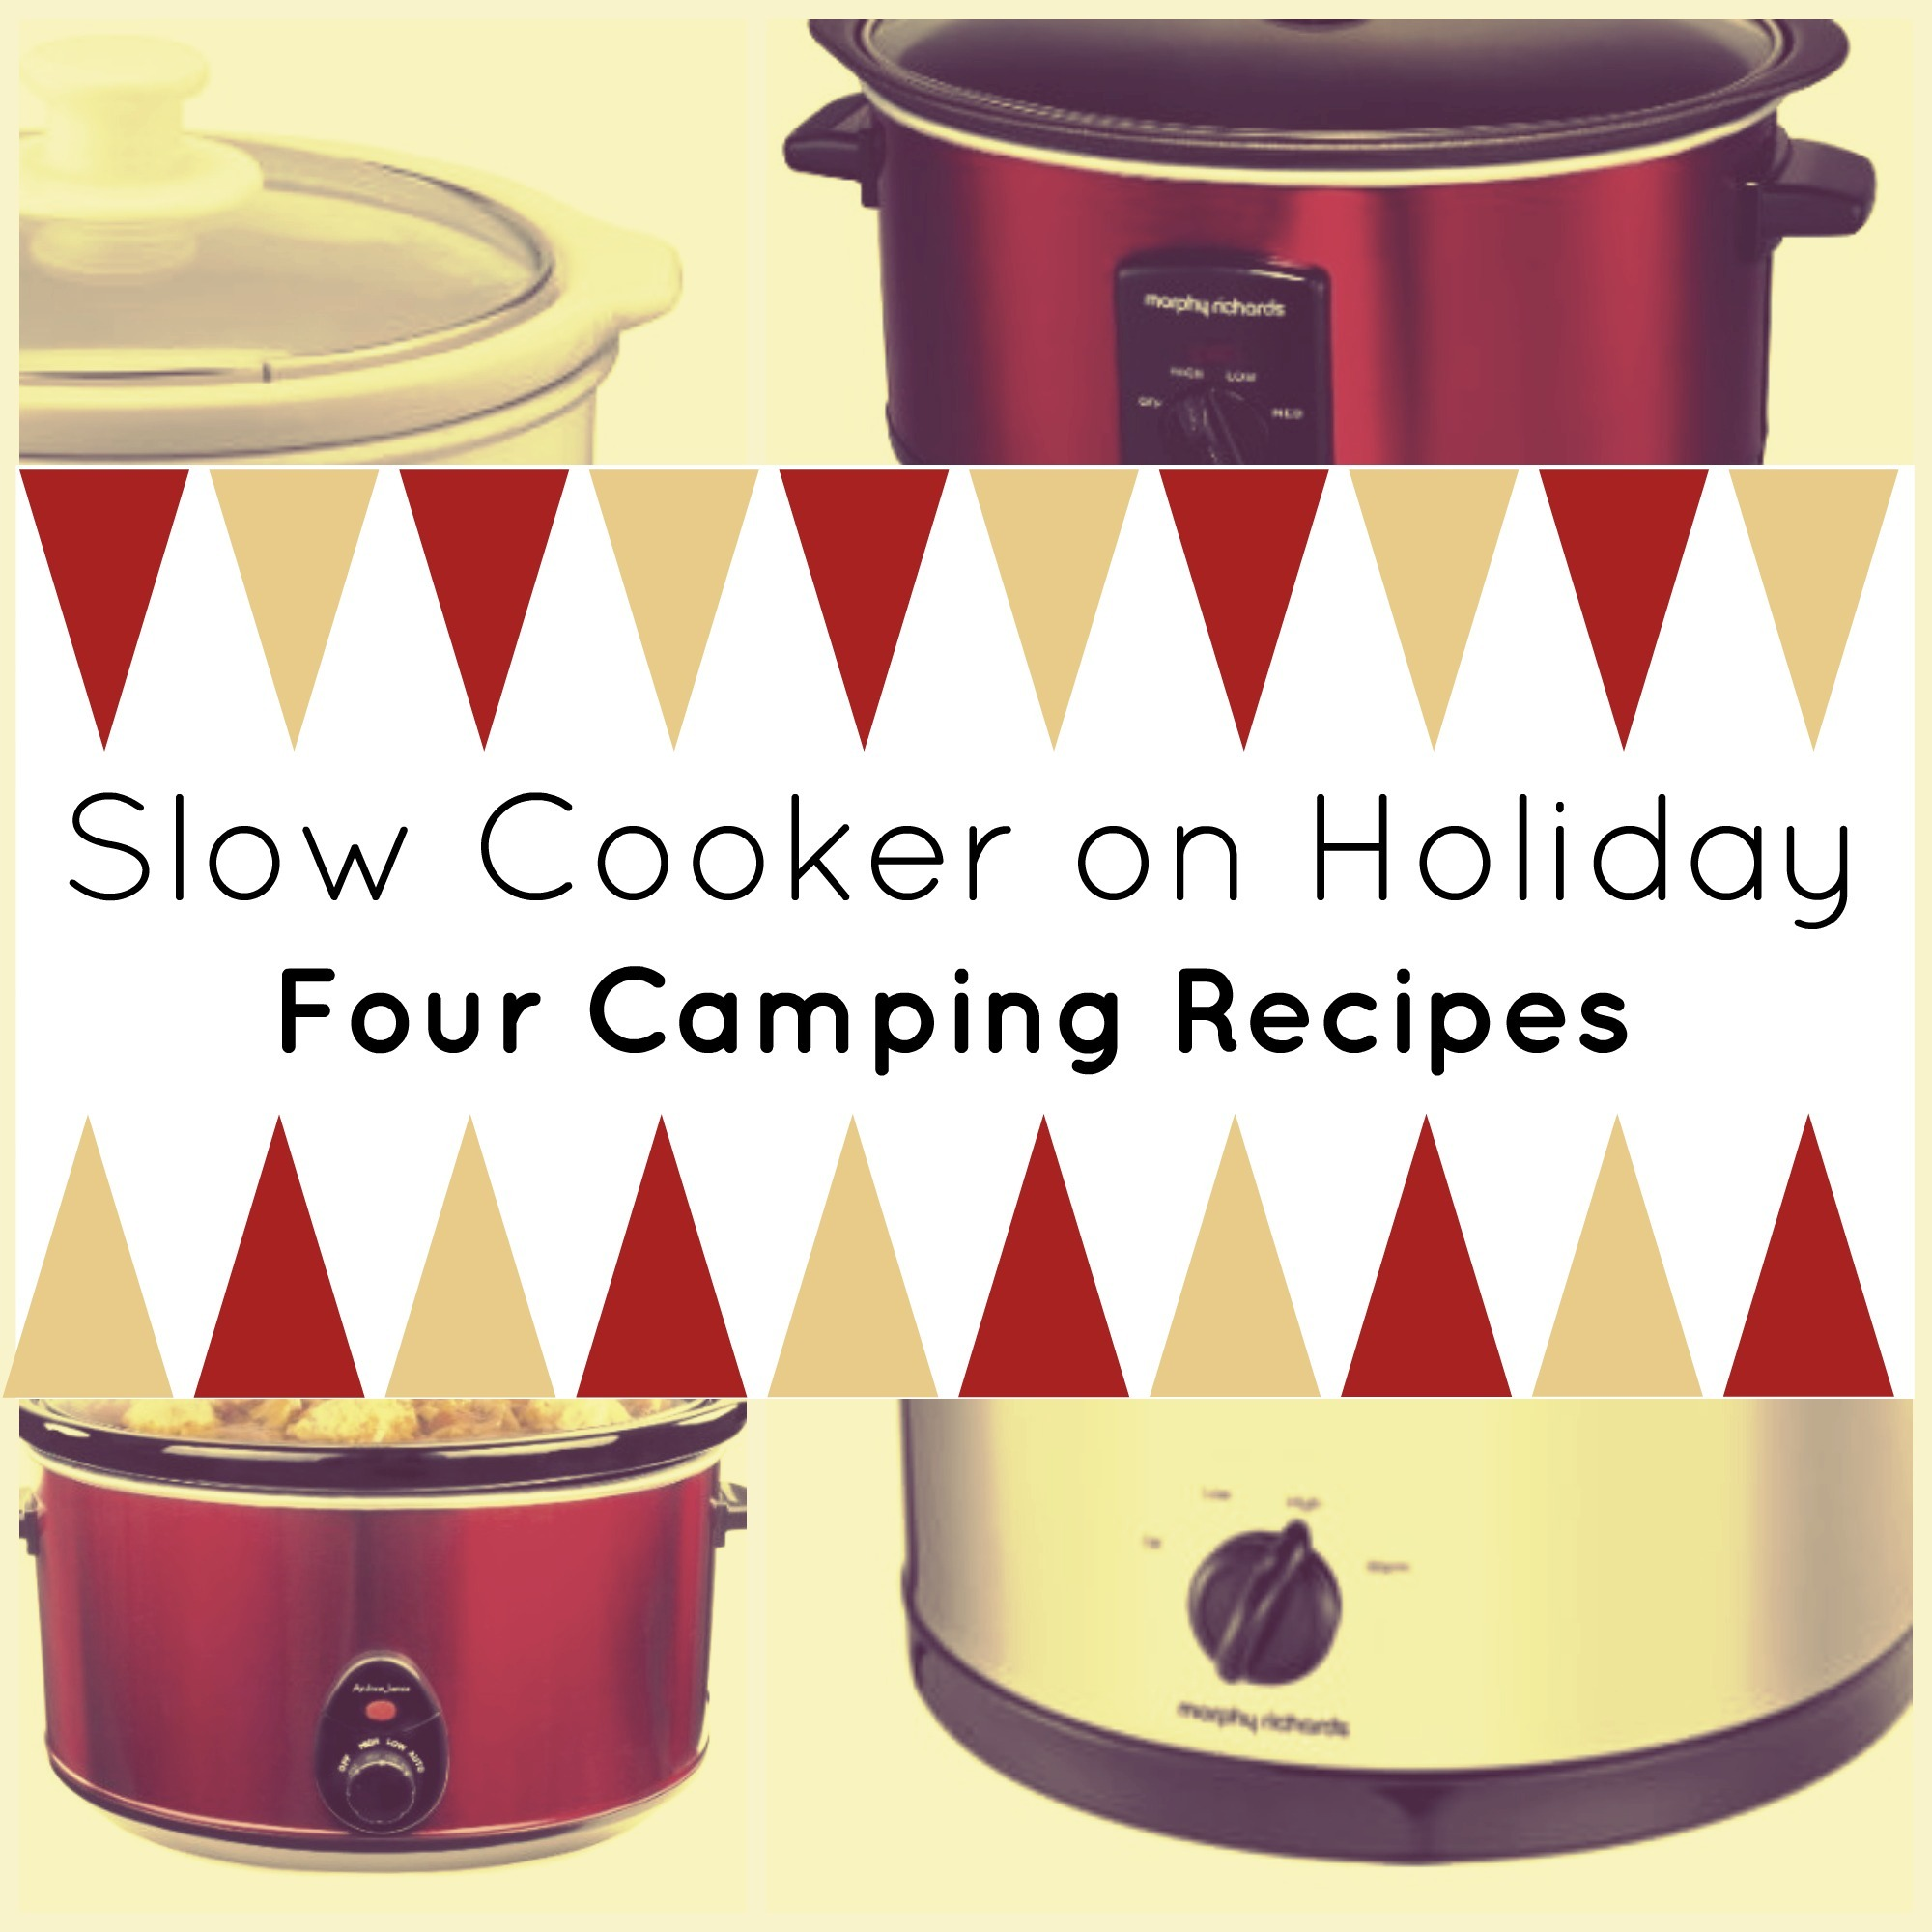 Slow Cooker on Holiday: Four Camping Recipes